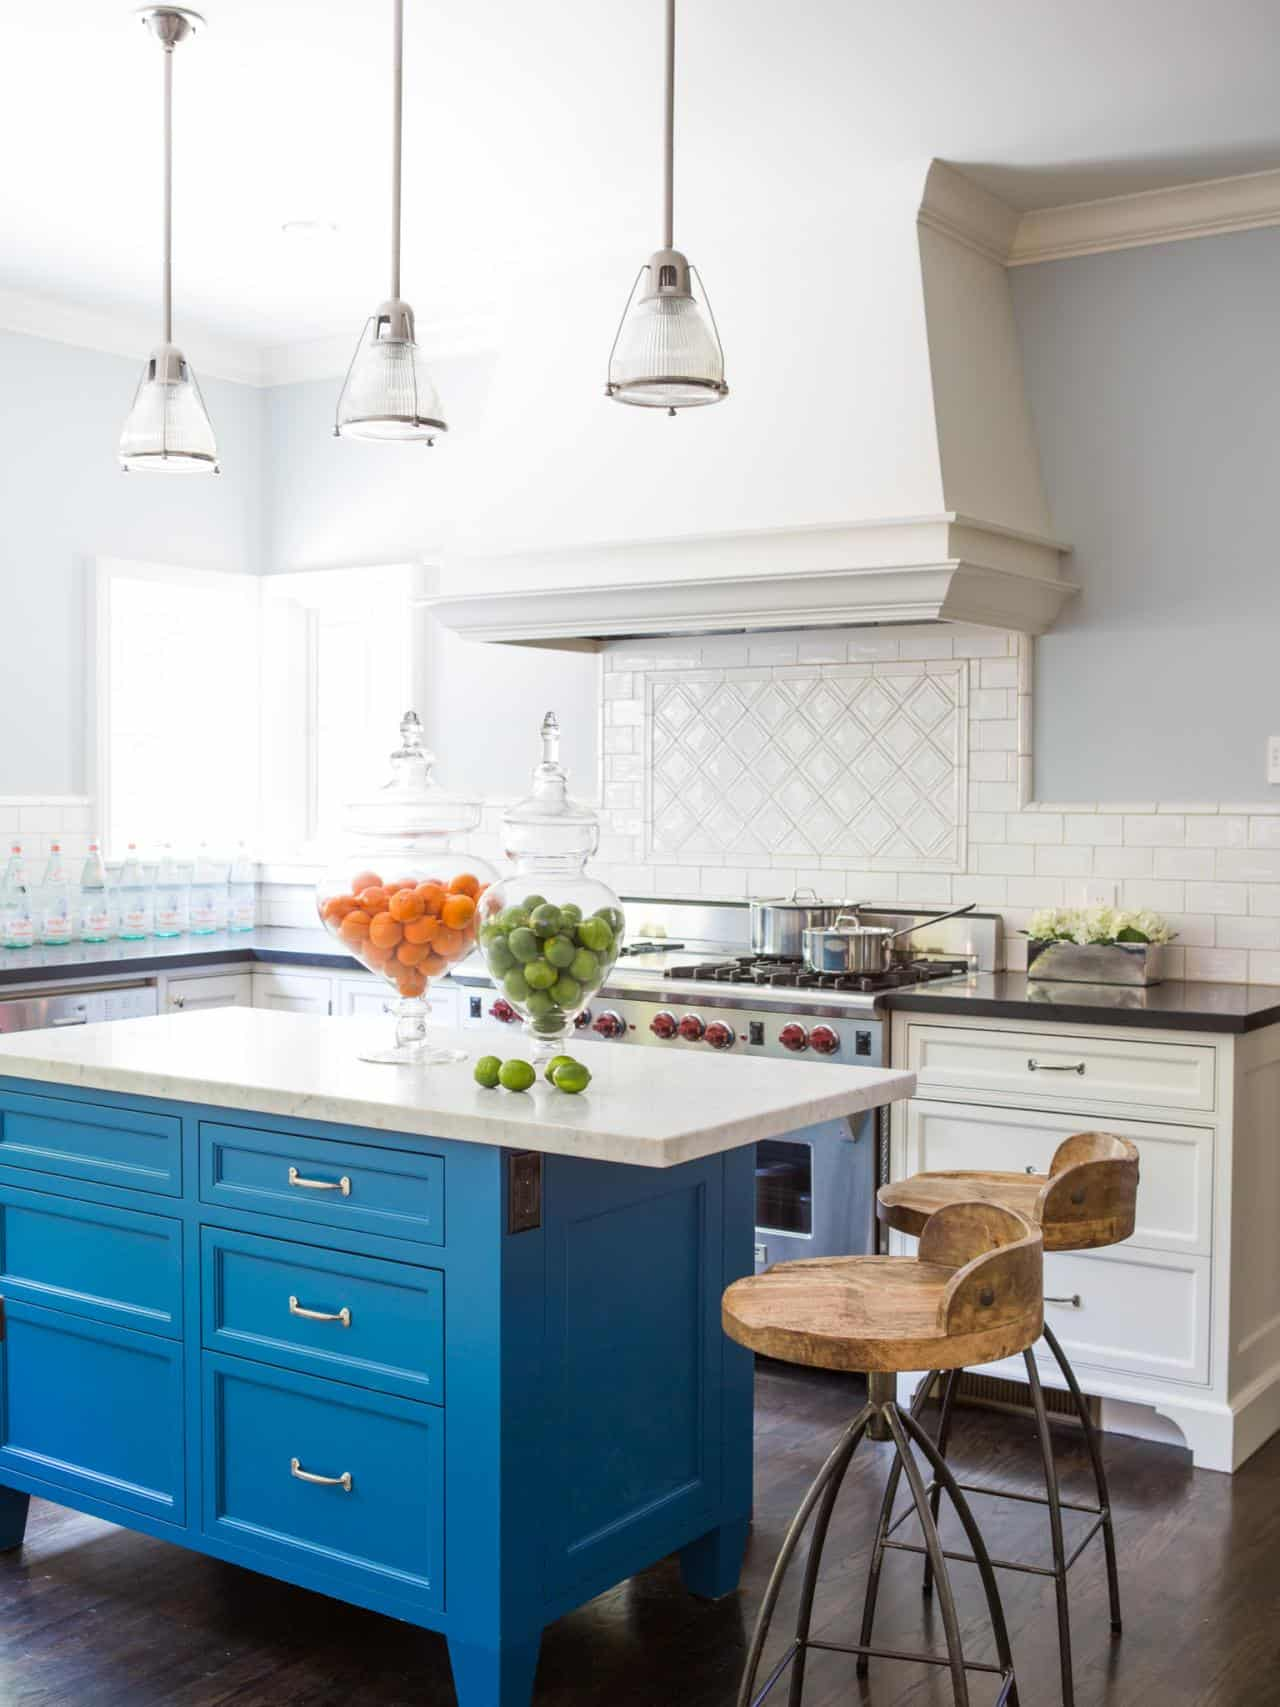 If you have a neutral or white toned kitchen a blue island could be exactly what you need